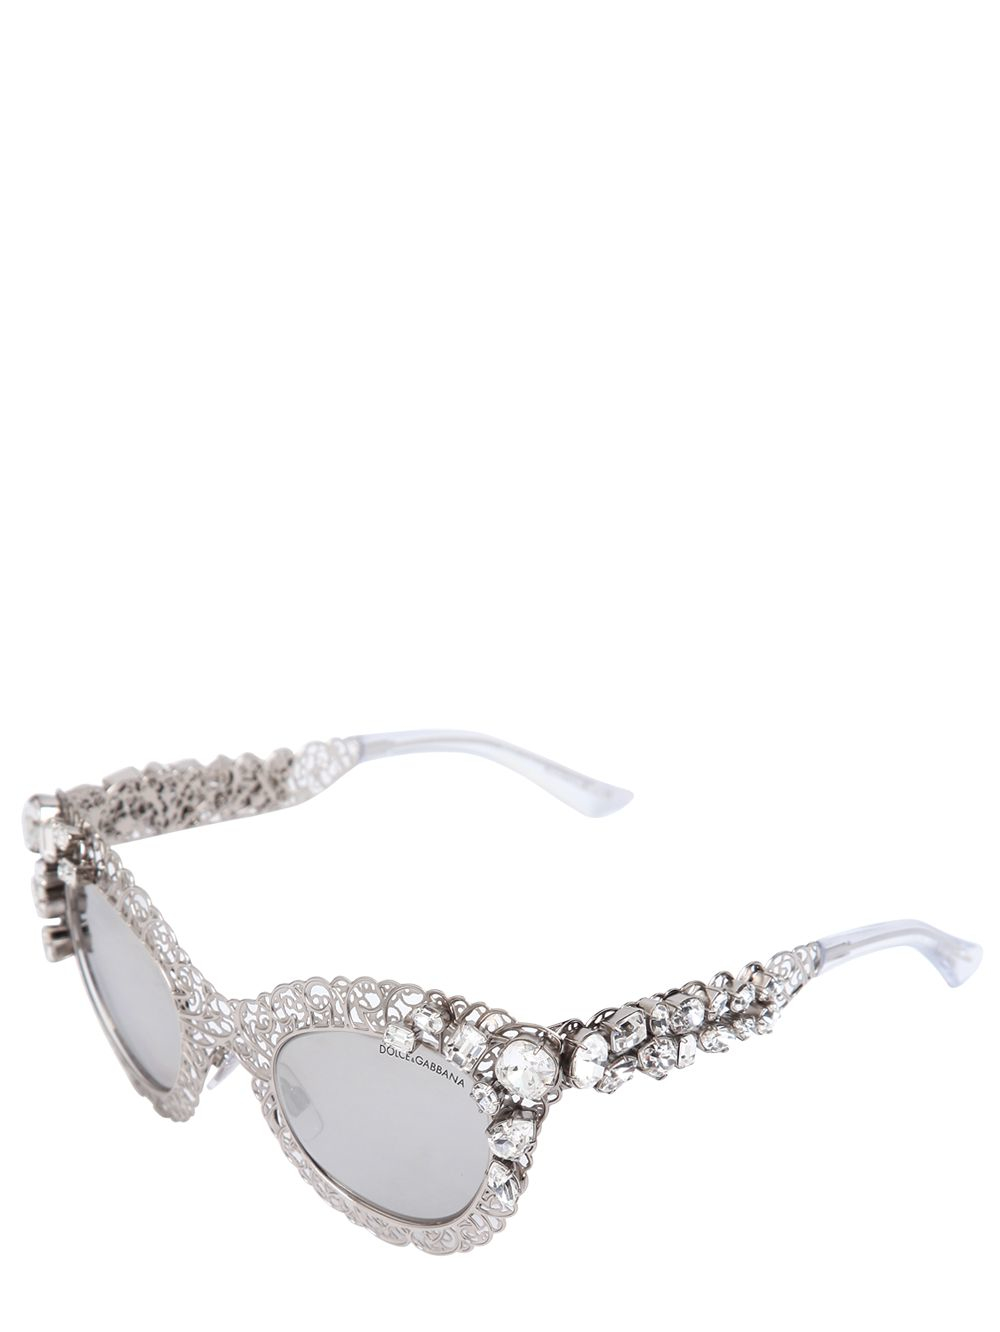 Dolce & Gabbana Eyewear Swarovski embellished sunglasses Outlet How Much Discount Price Where To Buy Low Price qv9E3pB